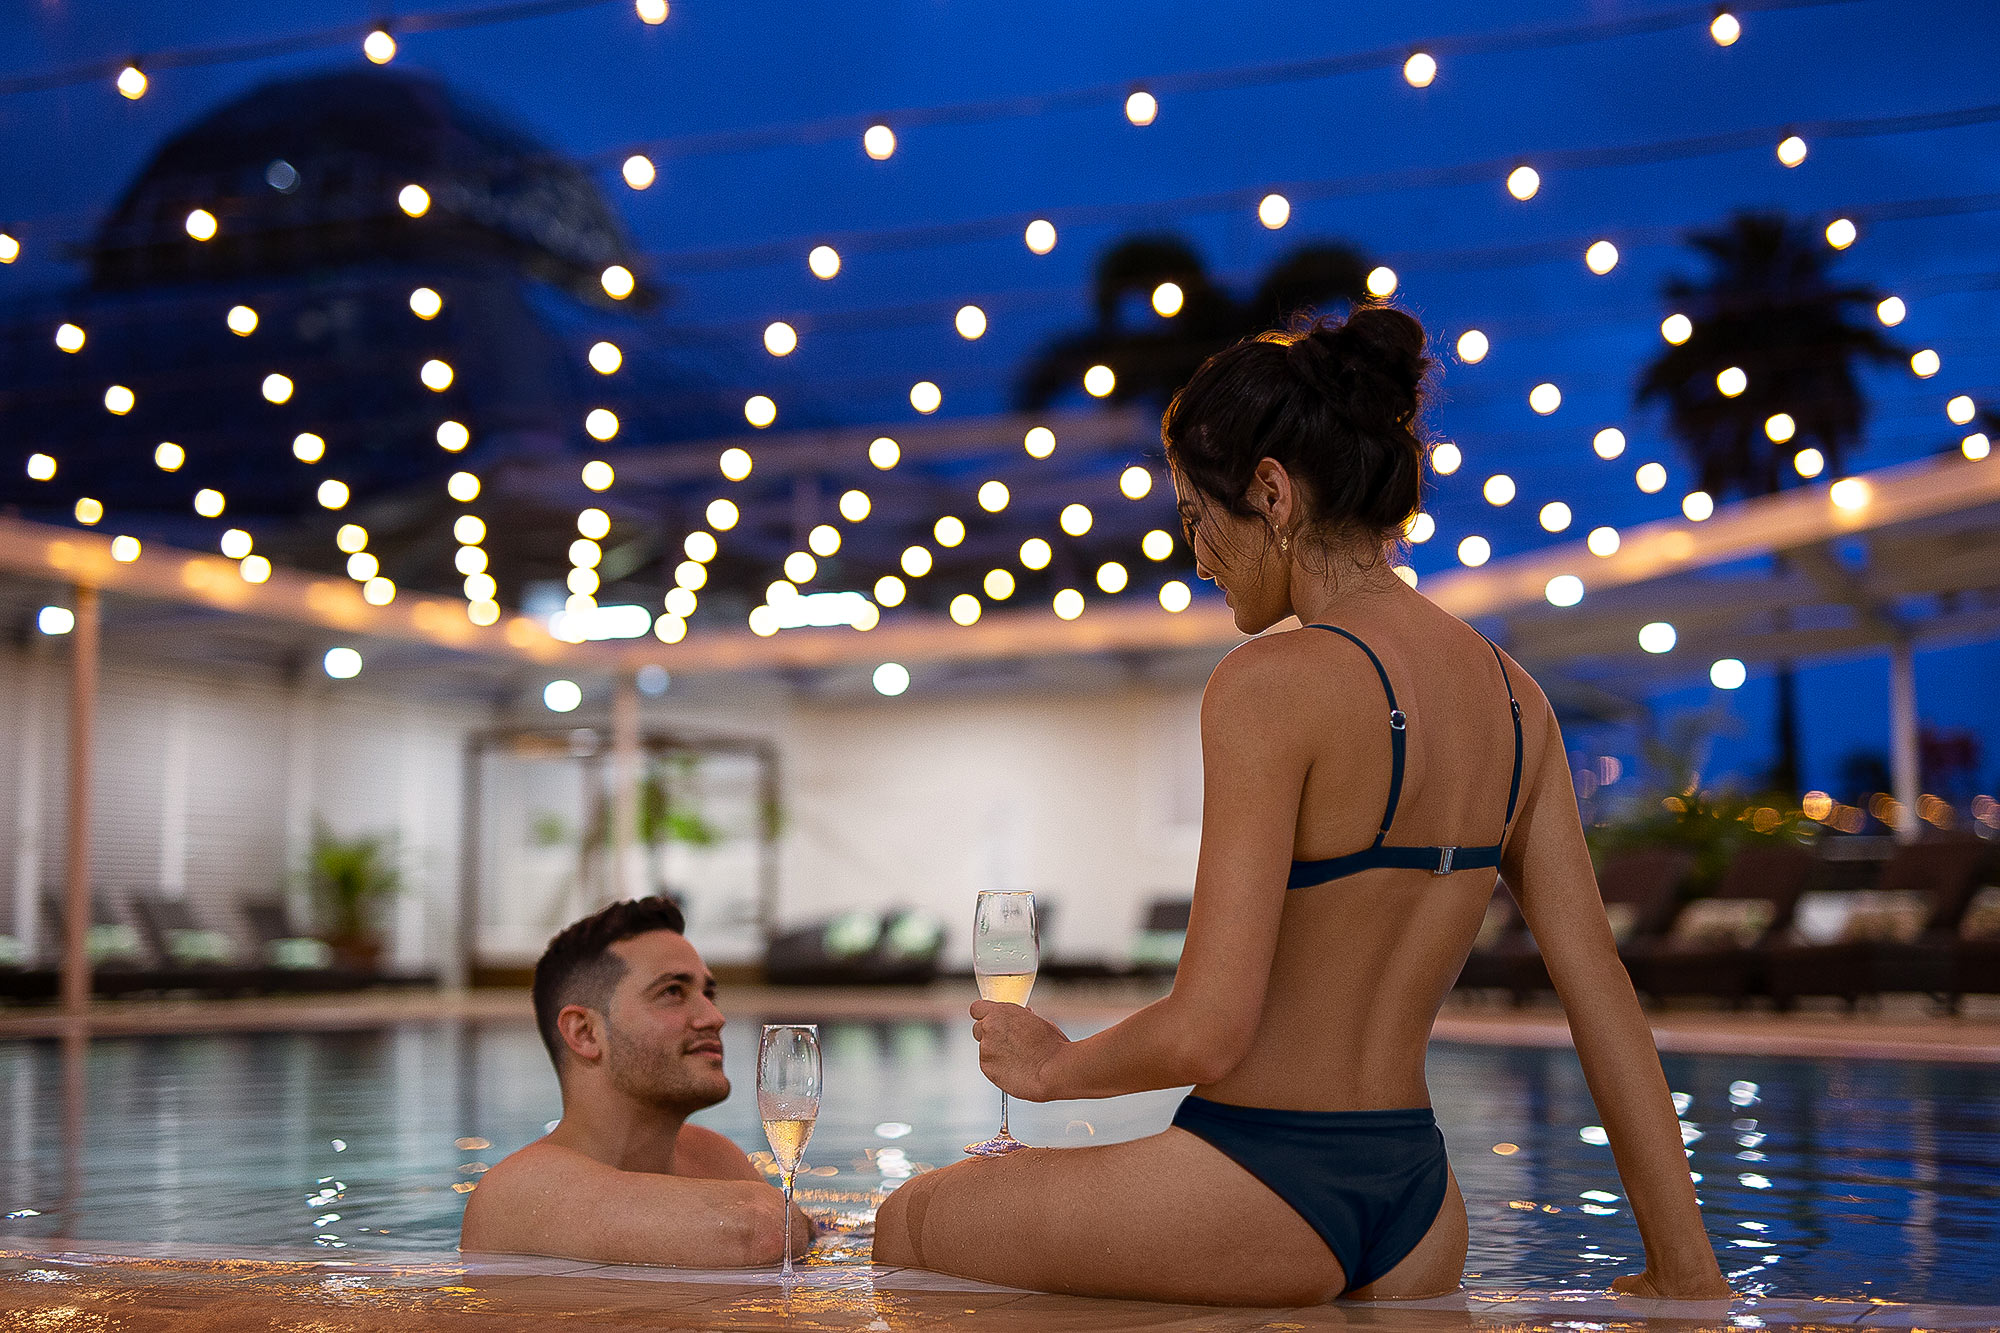 Romantic Hotel Lifestyle Pool Photography by Adrian Kilchherr Europe Australia